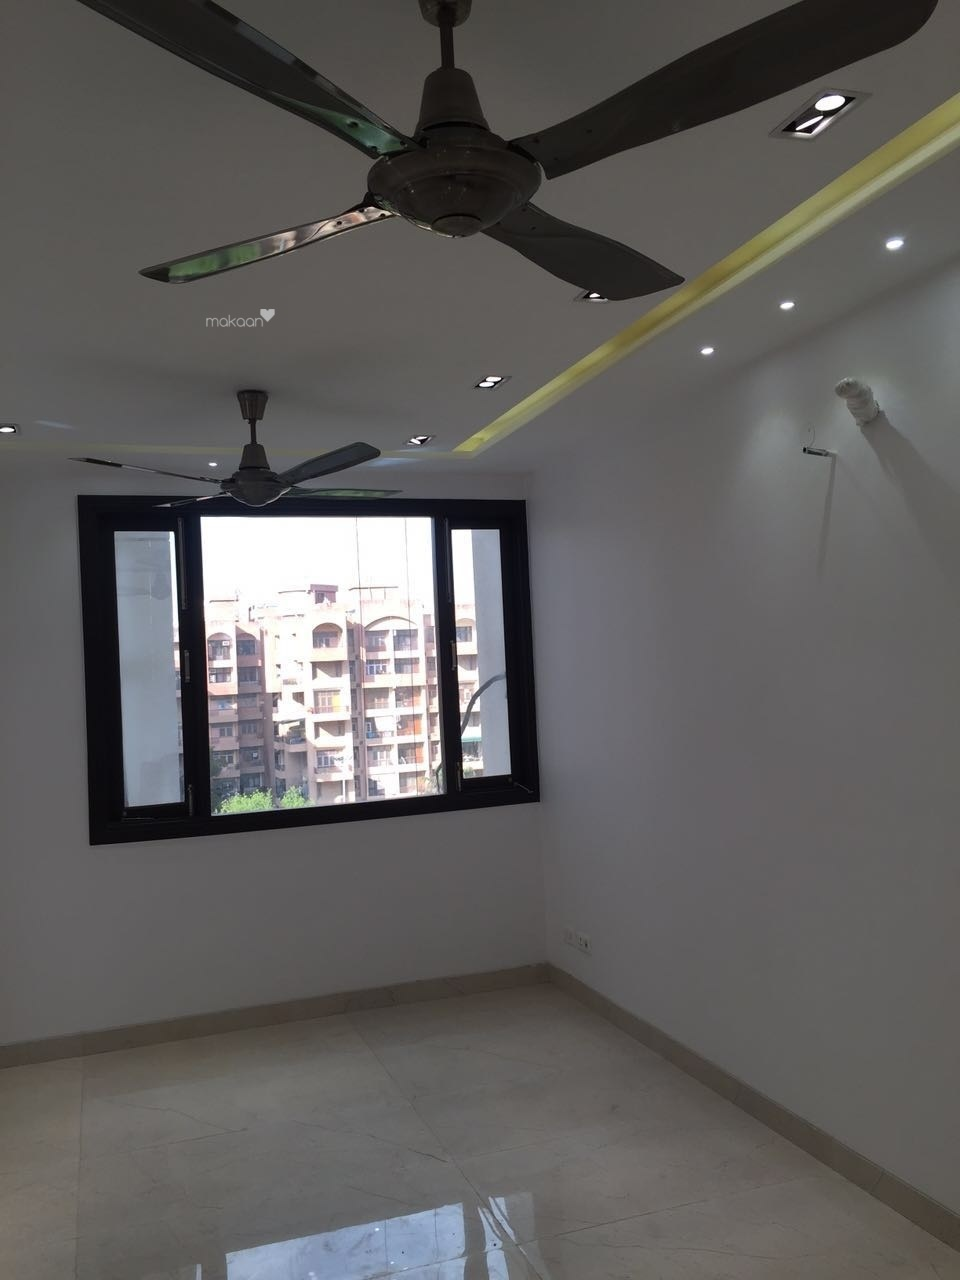 1800 sq ft 3BHK 3BHK+3T (1,800 sq ft) + Servant Room Property By Property Space In New Cosmopolitan Apartments, Sector 10 Dwarka